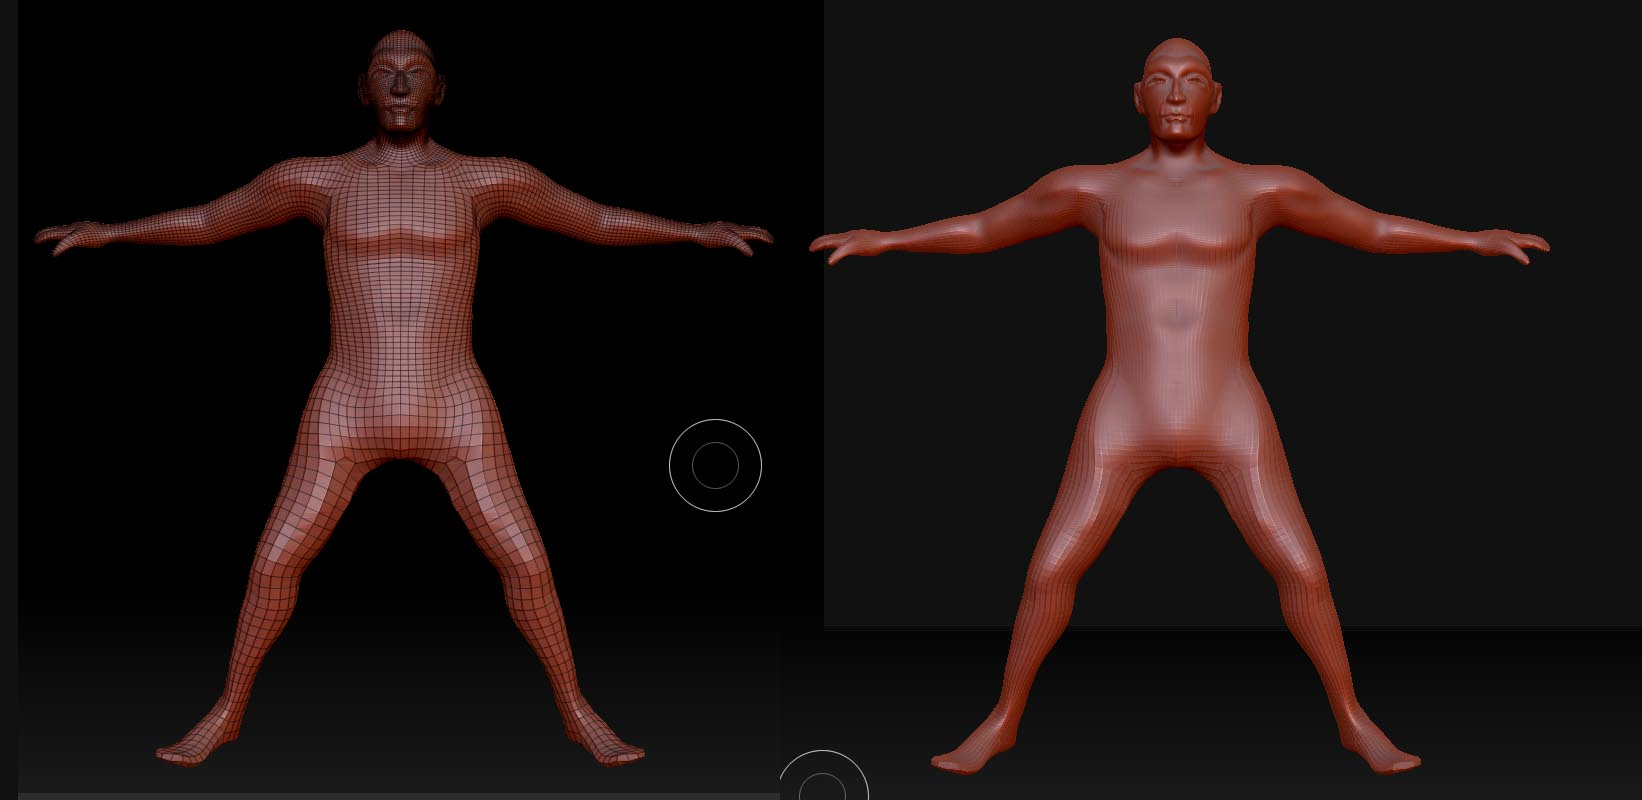 body_no_cloth_model_23mm_for_3dprint_